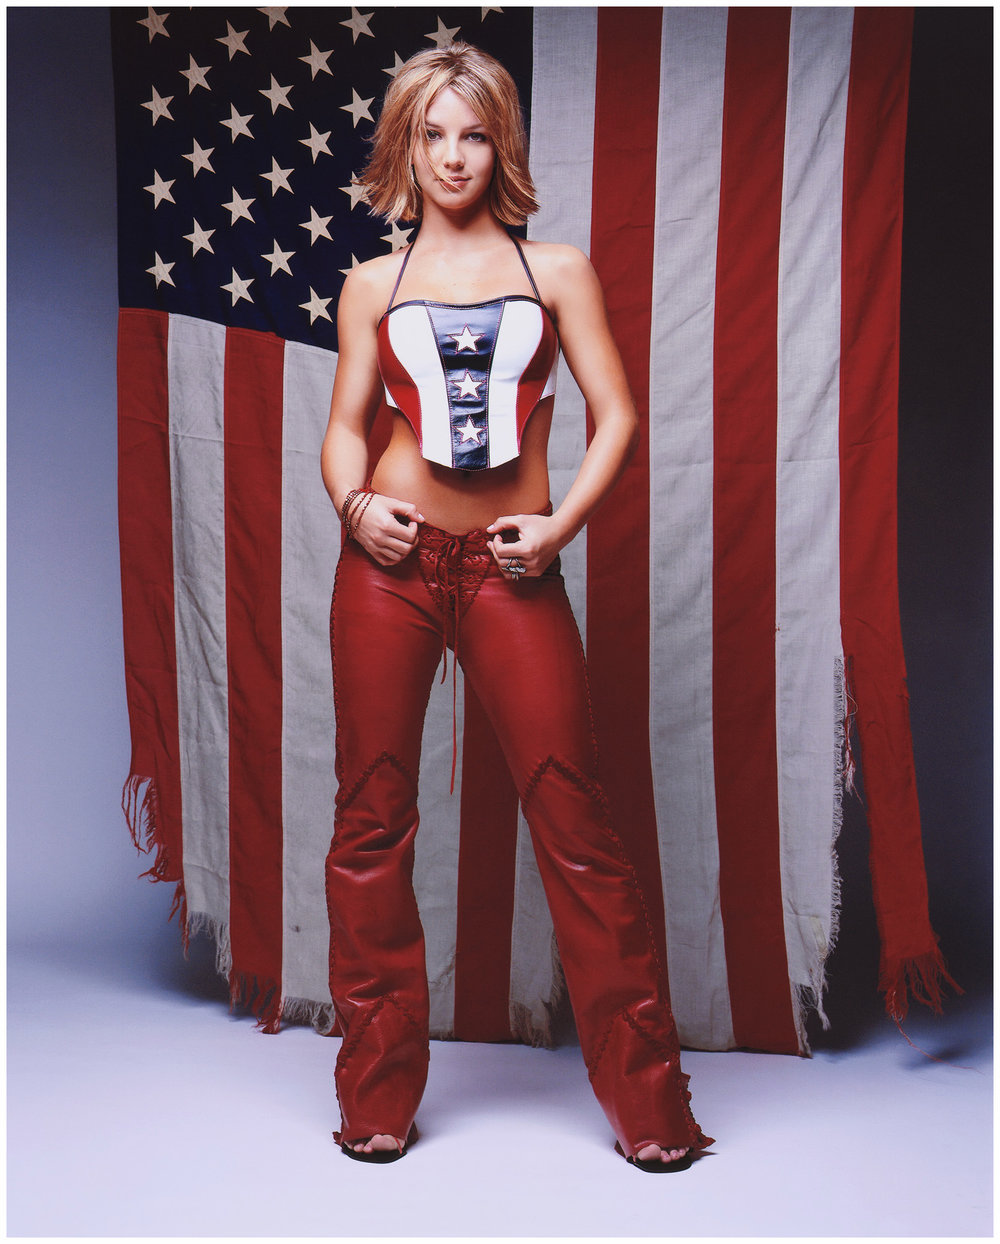 Mark Seliger, Rolling Stone, 2000